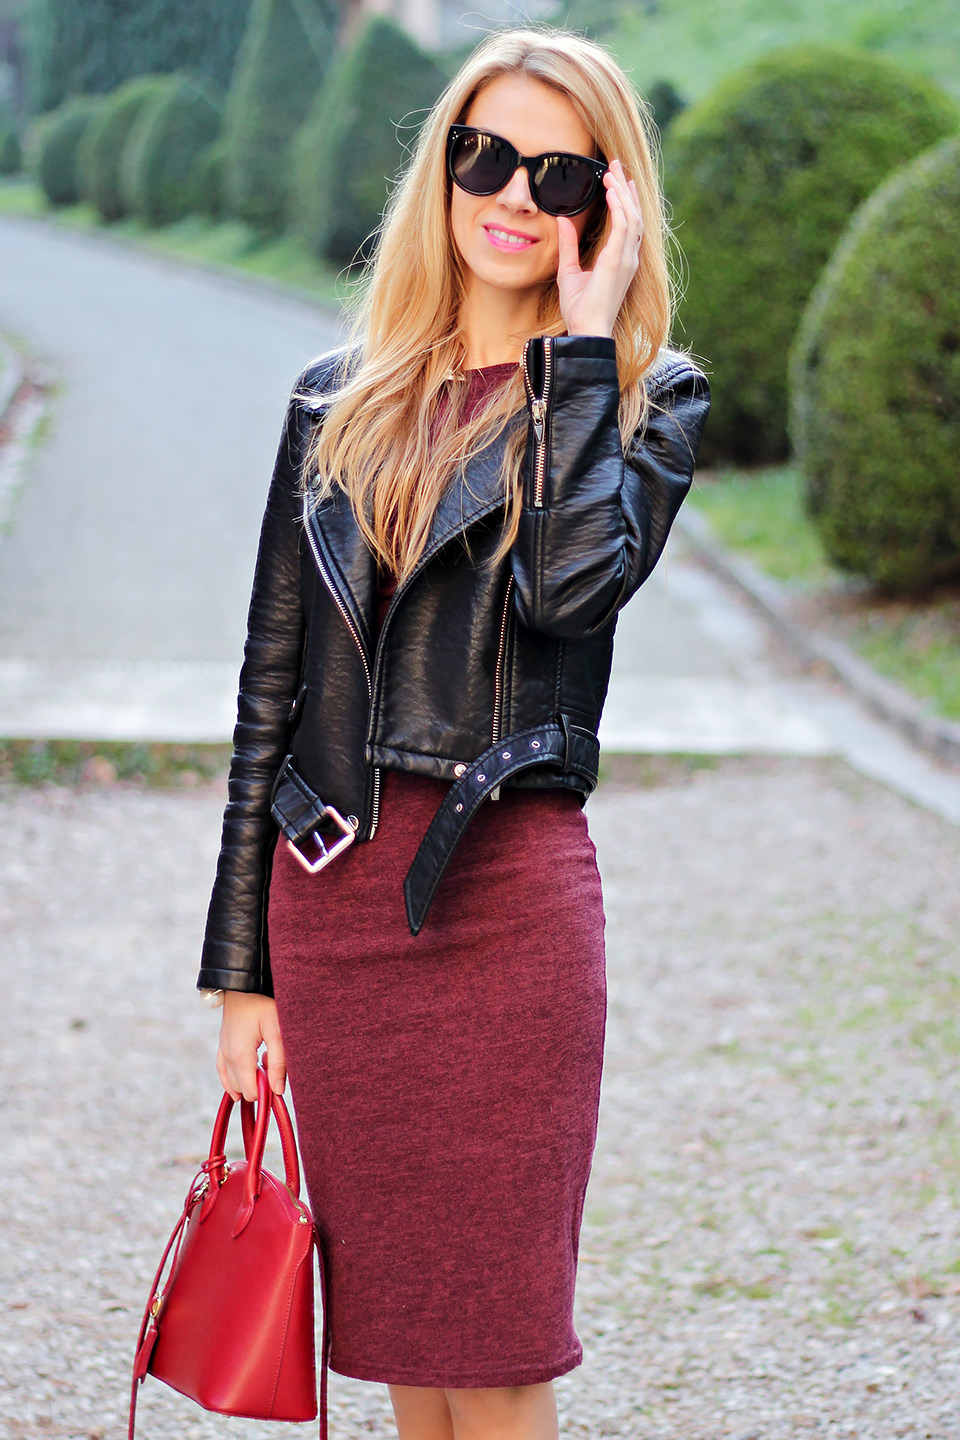 The model has paired her simple red bodycon dress with the jacket.